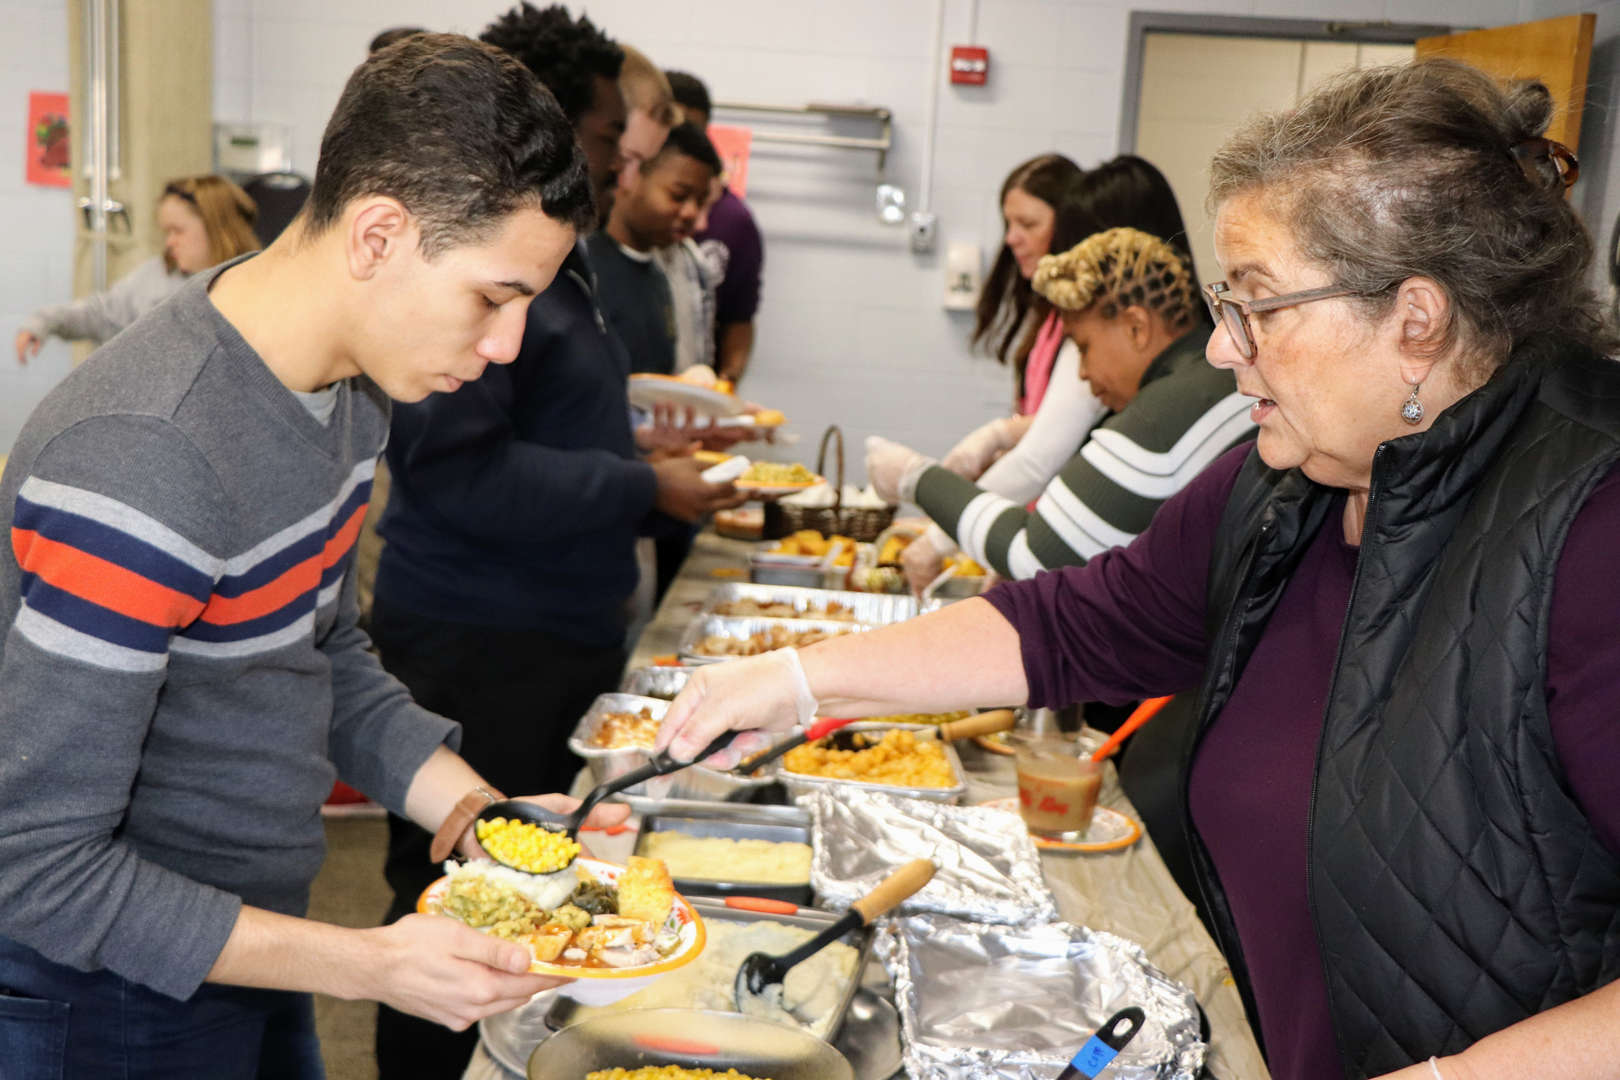 staff members served up Thanksgiving fare at luncheon